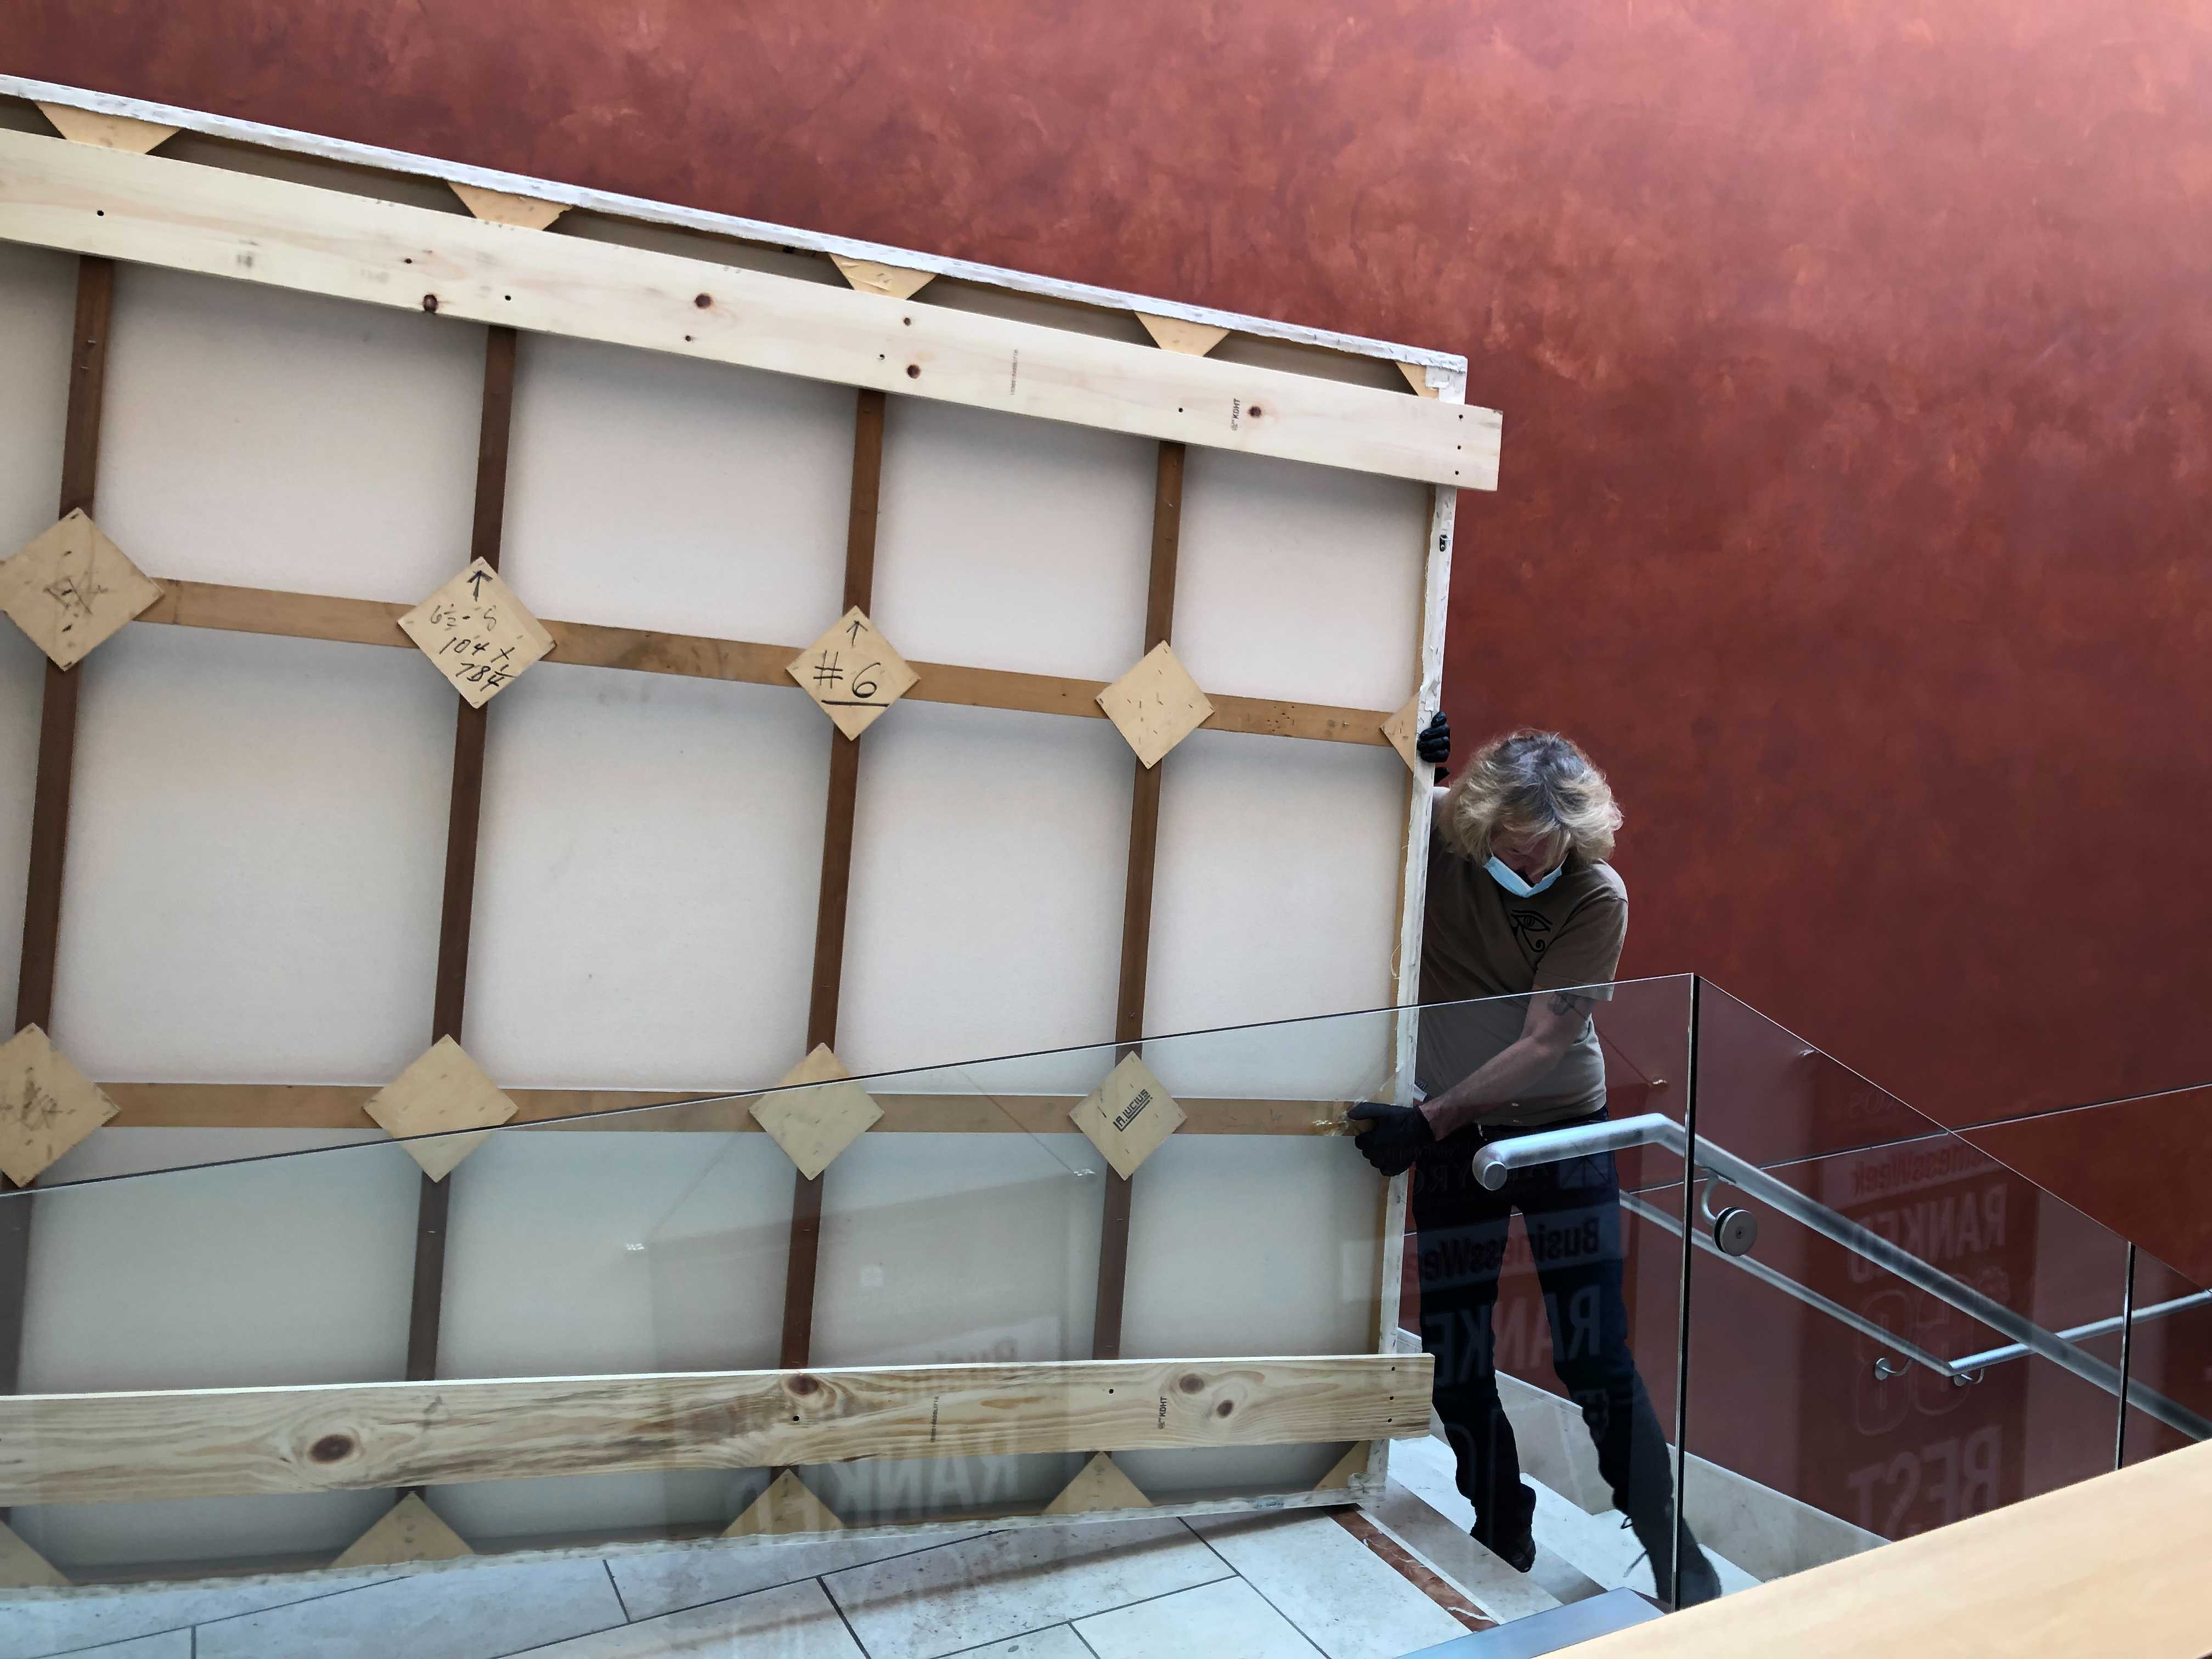 Back of painting being carried downstairs.